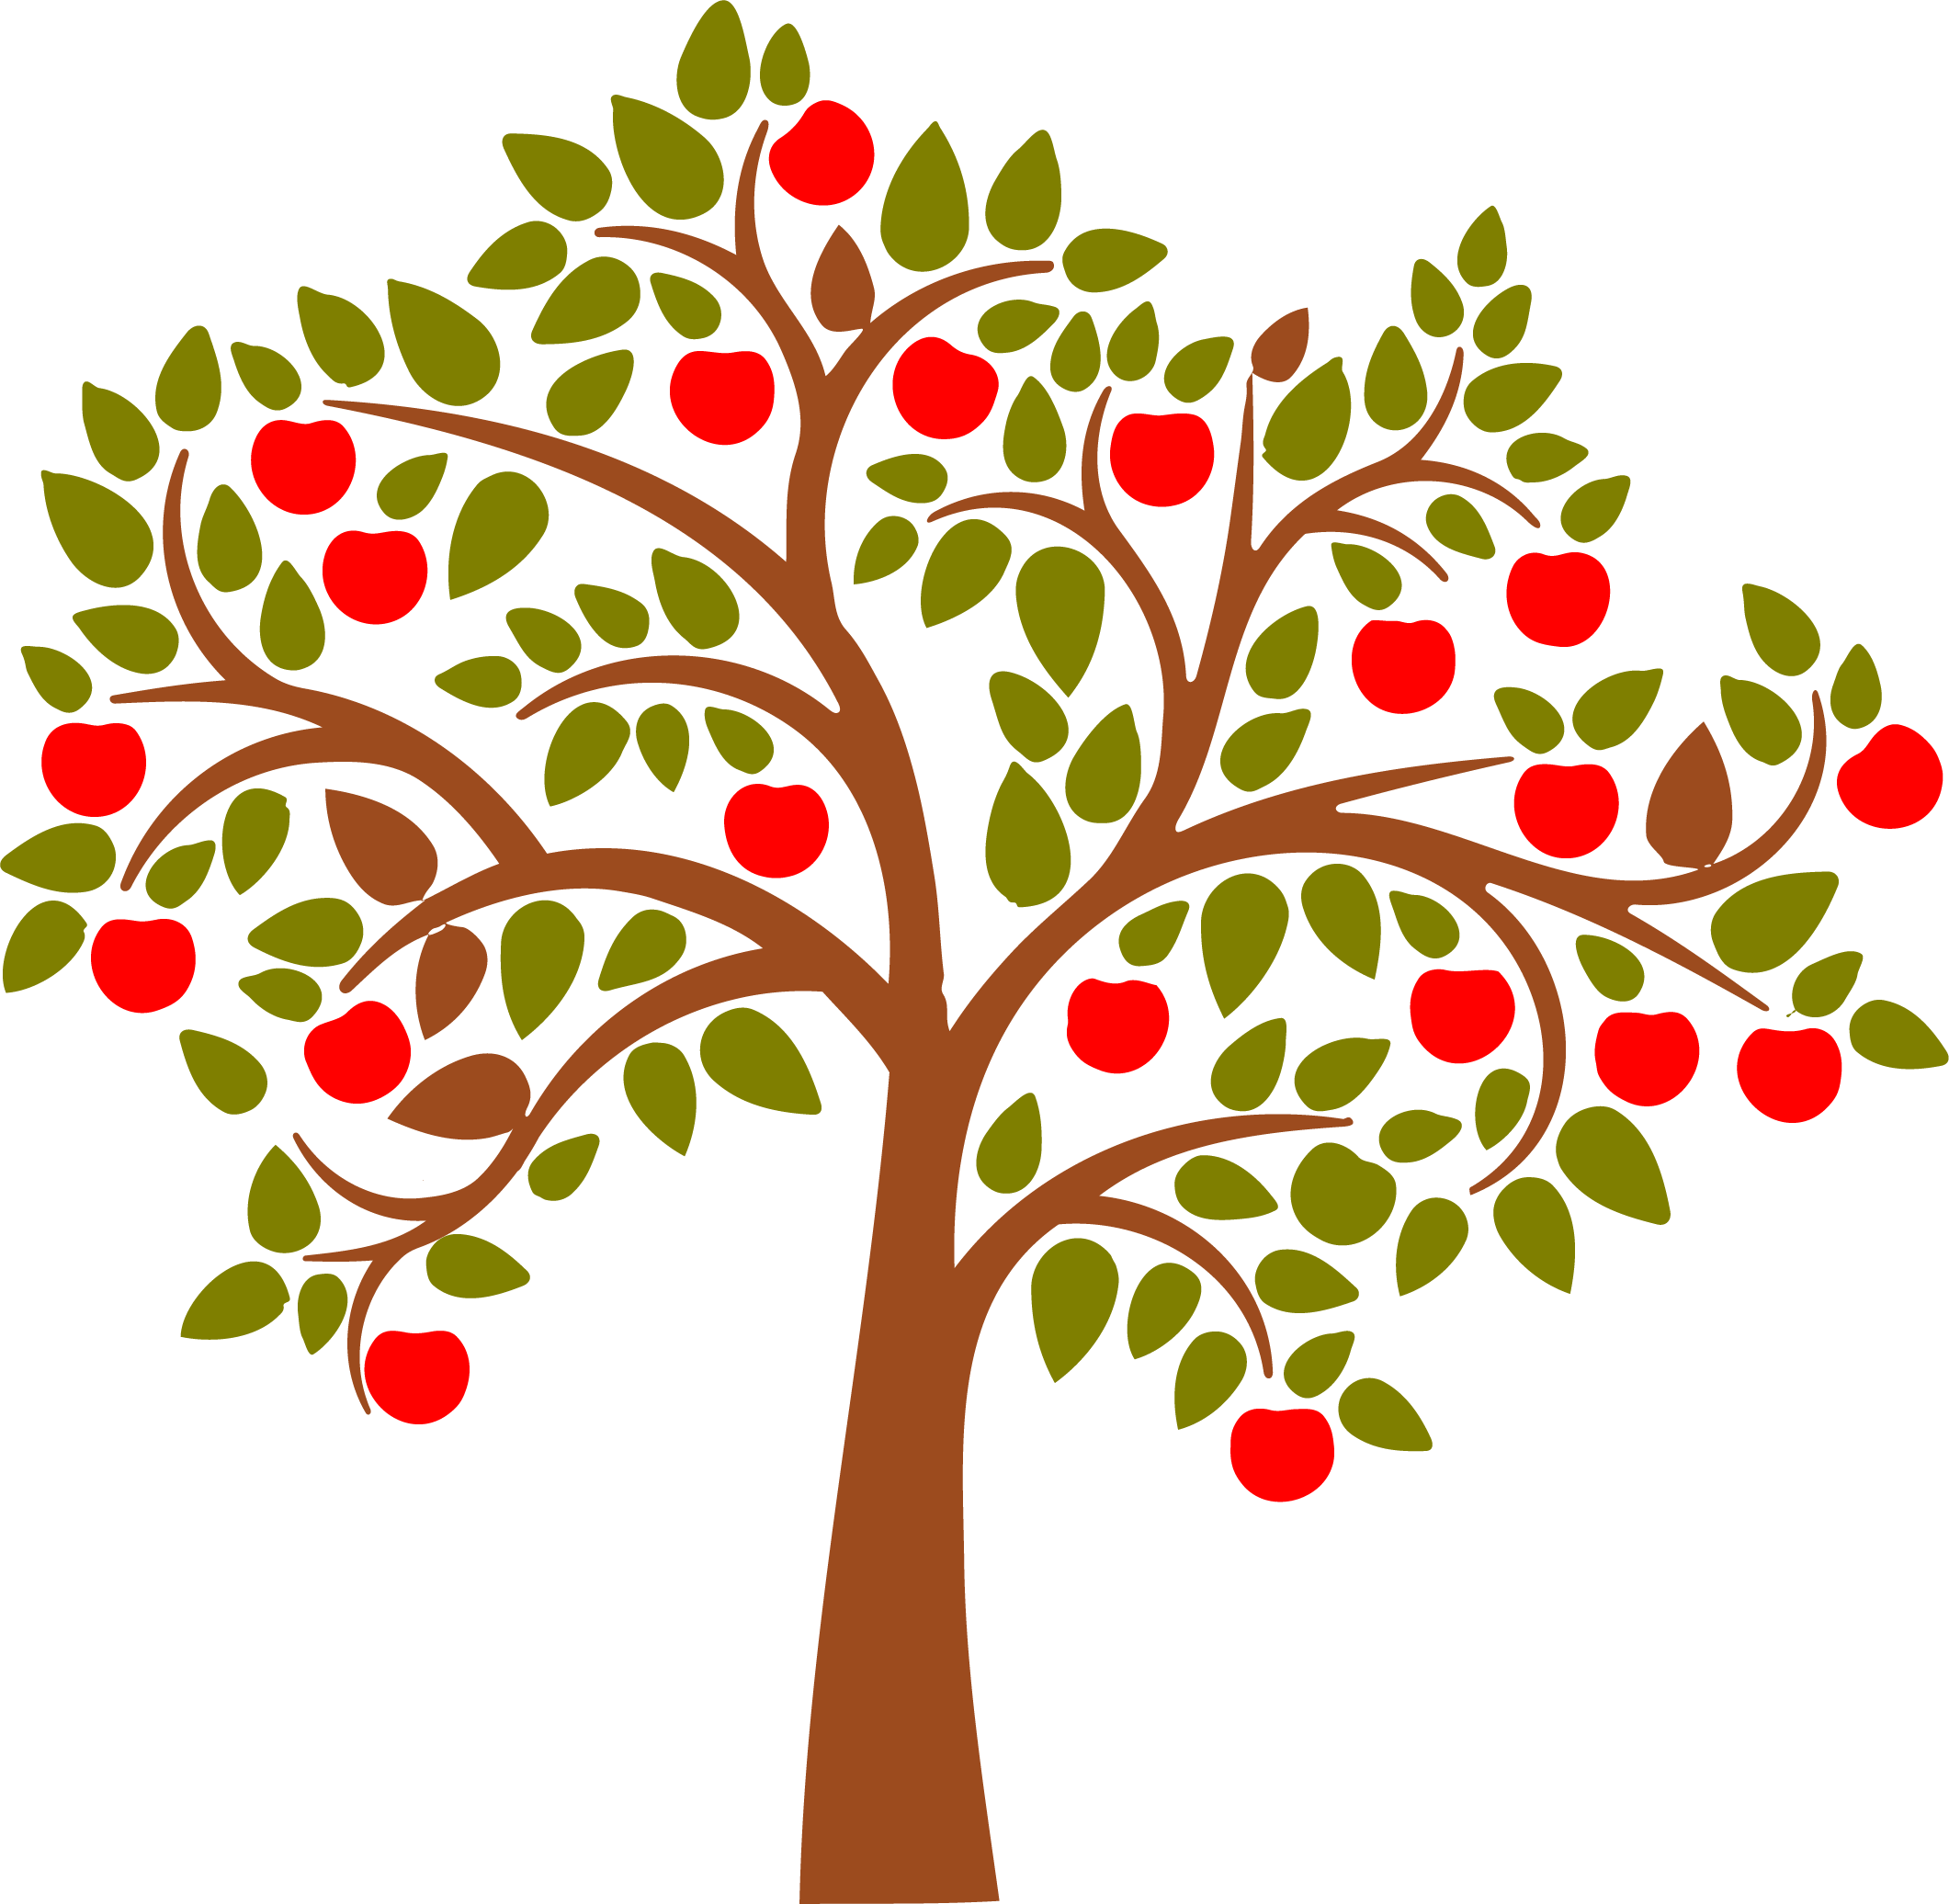 Free clipart apple branch picture royalty free library Apple Tree Drawing at GetDrawings.com | Free for personal use Apple ... picture royalty free library